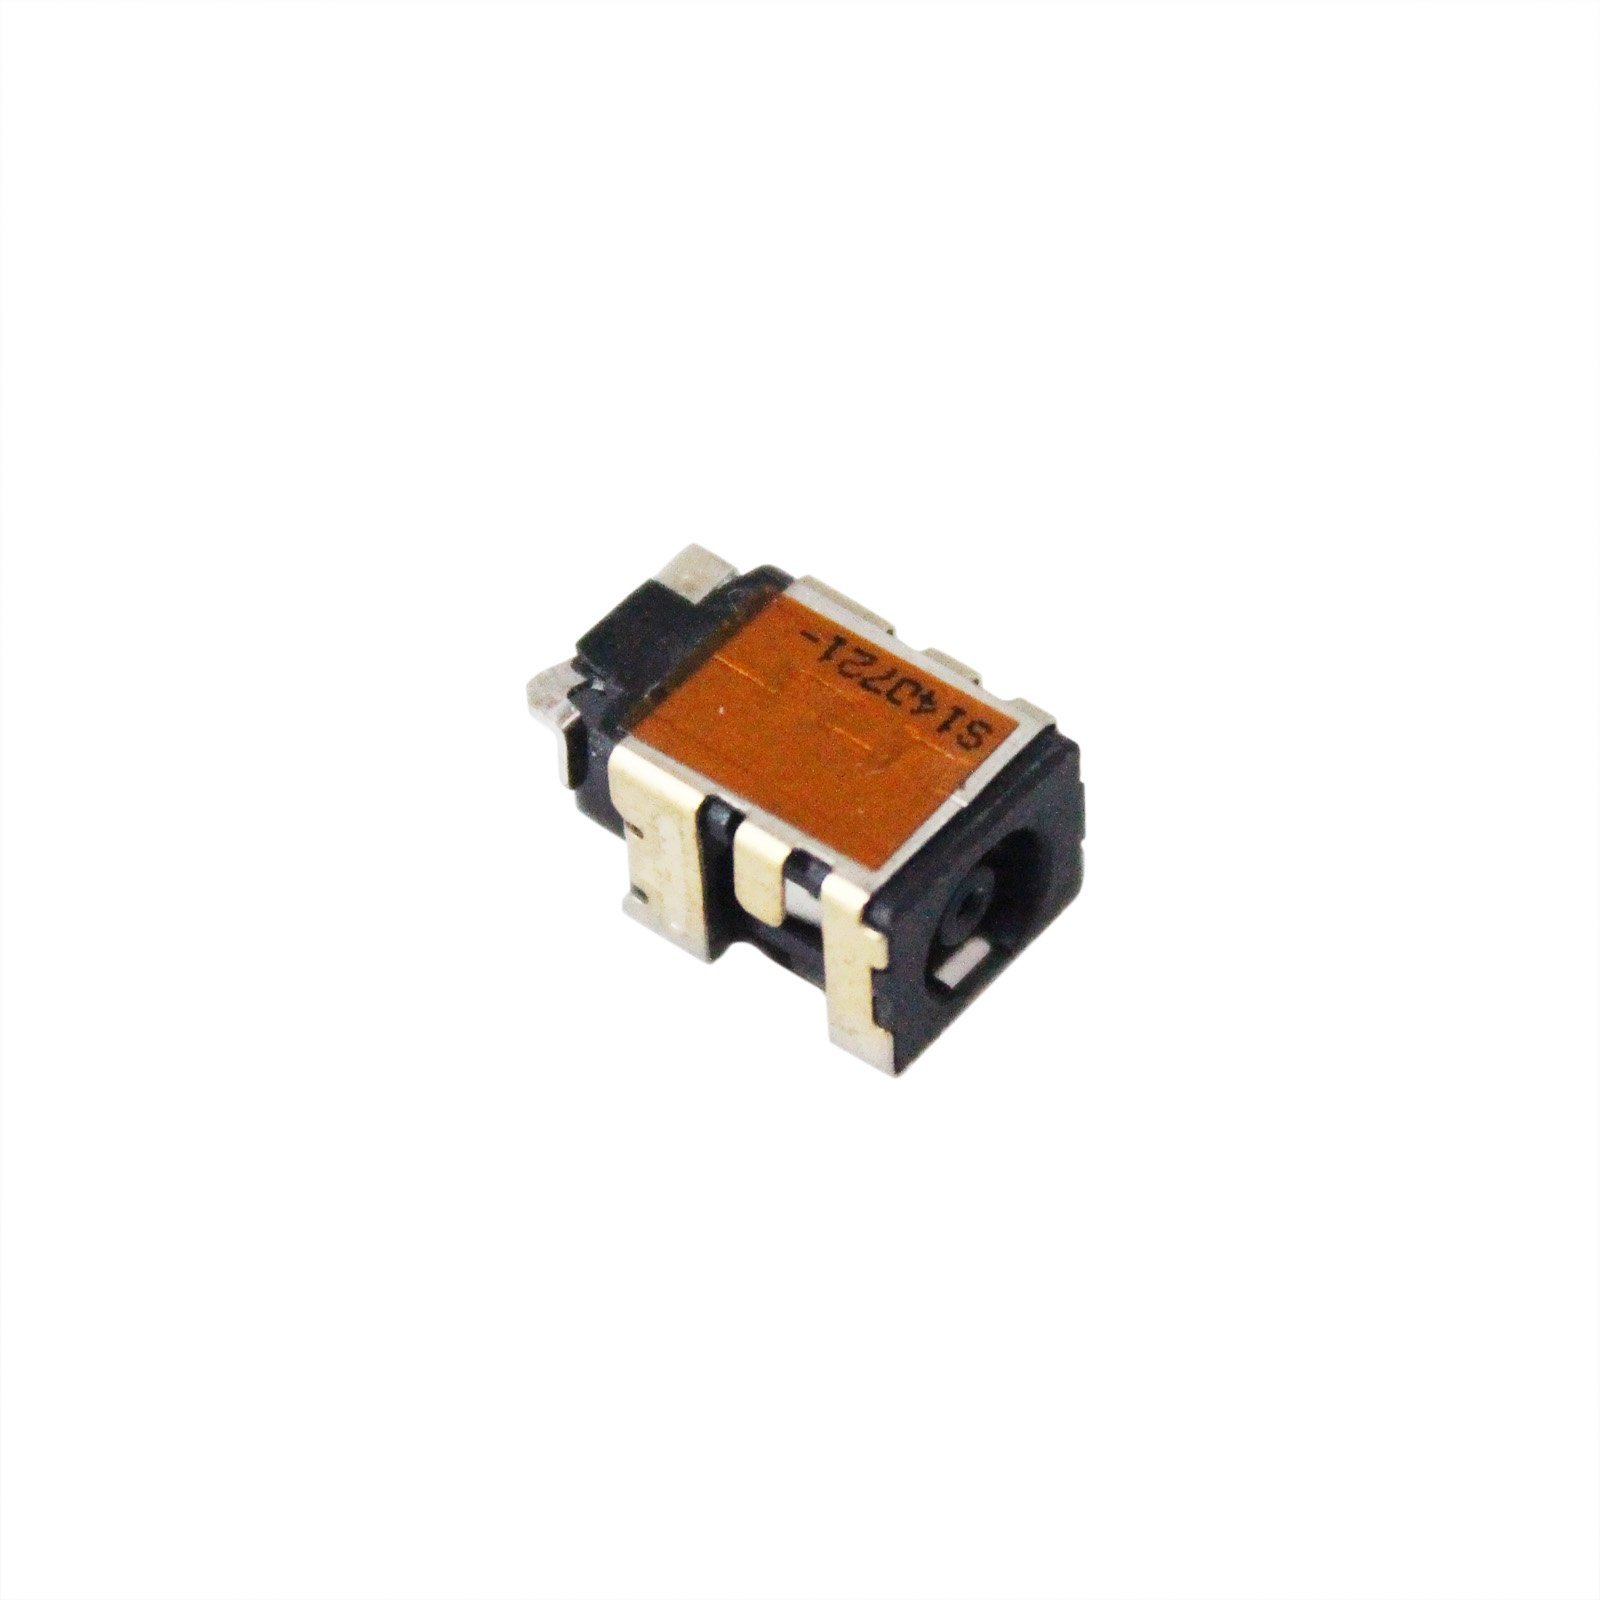 GinTai DC Power Jack Replacement for ASUS Compatible with n501jw ux501jw G501J G501JW G501JW-DS71 UX501V UX501VW by GinTai (Image #4)